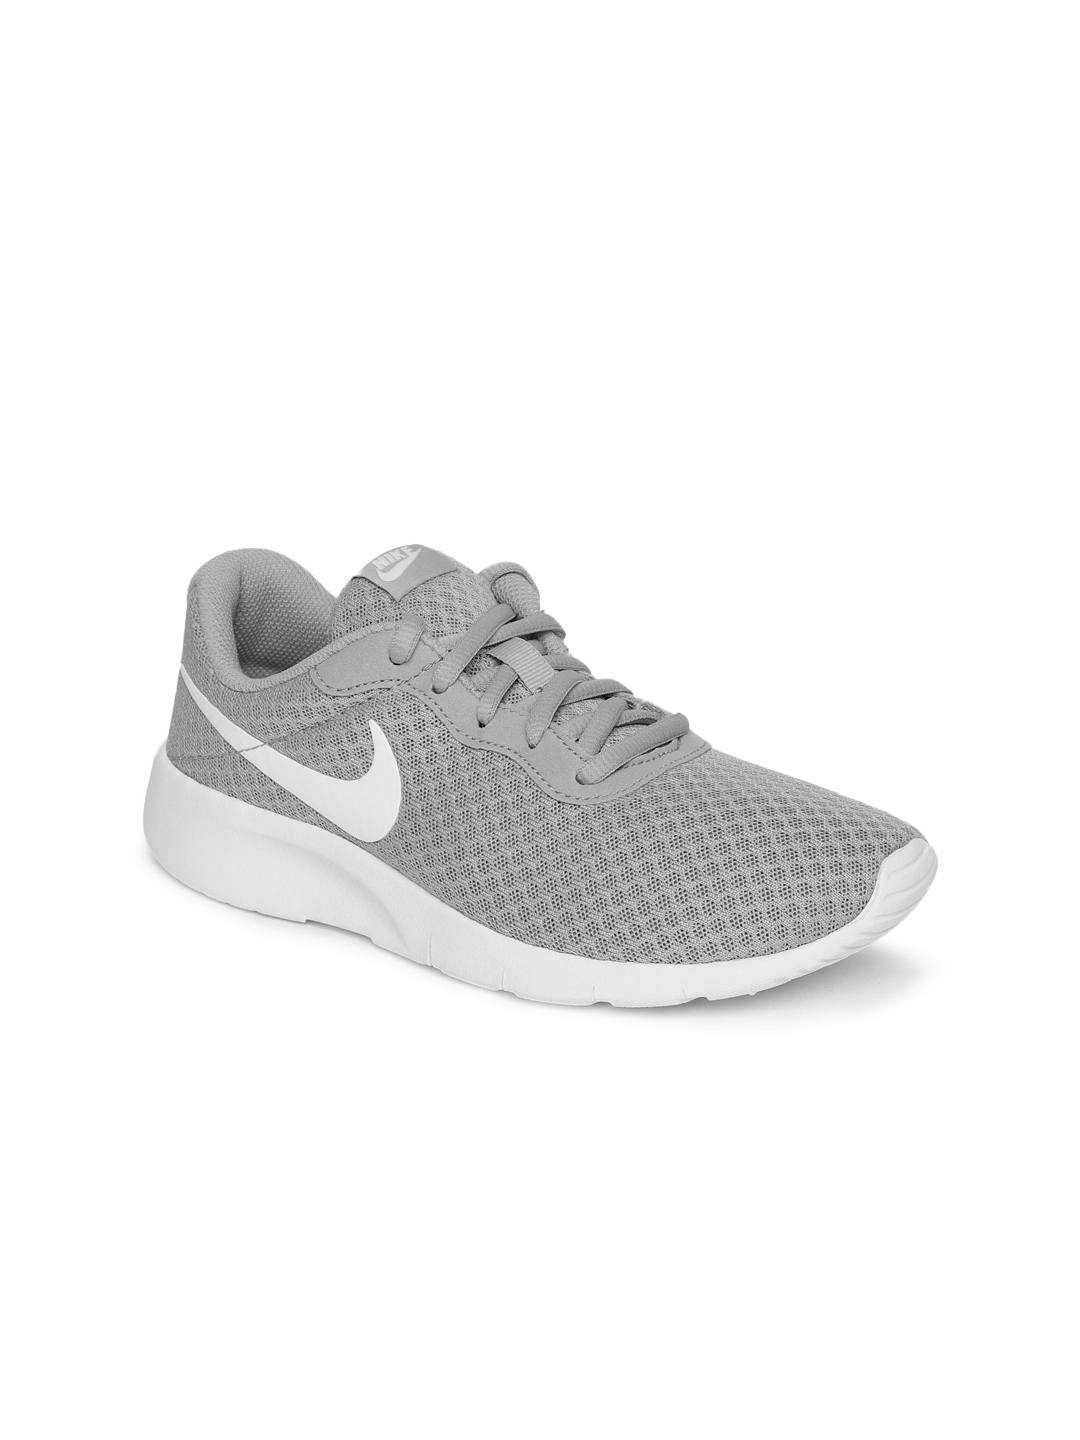 5f8ad8ccd73e Buy Nike Boys Grey TANJUN (GS) Sneakers - Casual Shoes for Boys ...